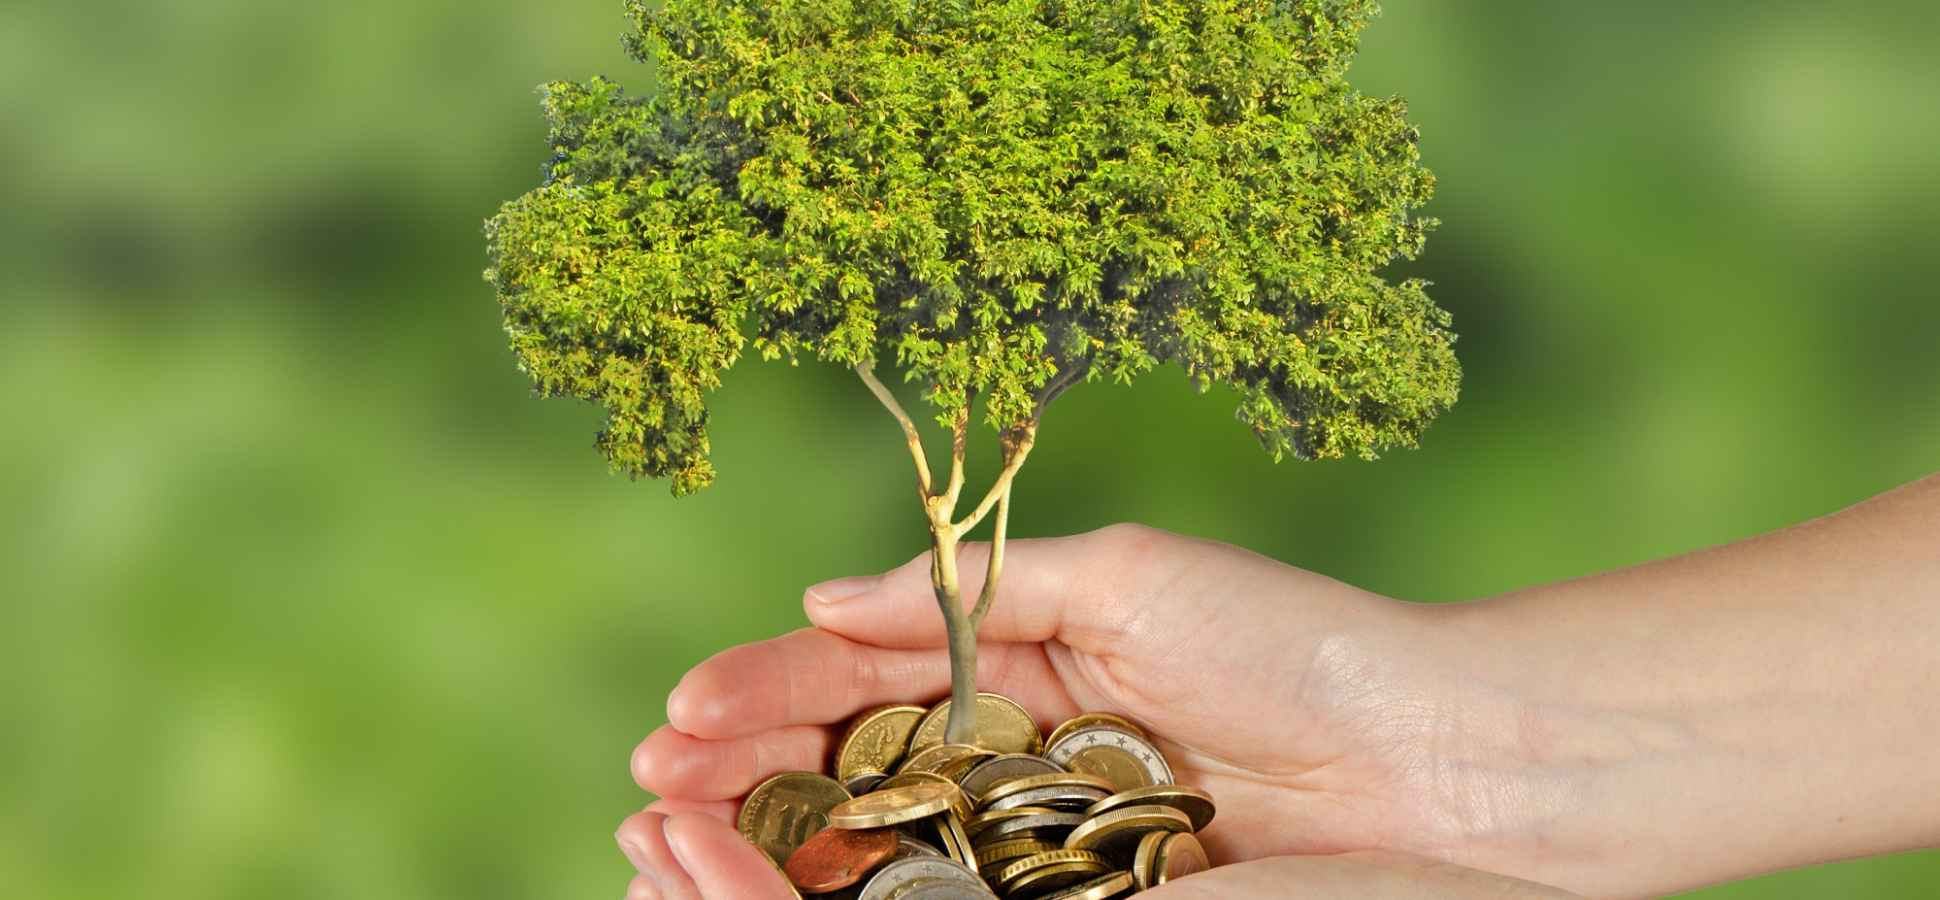 Why You Should Invest in the New Green Economy